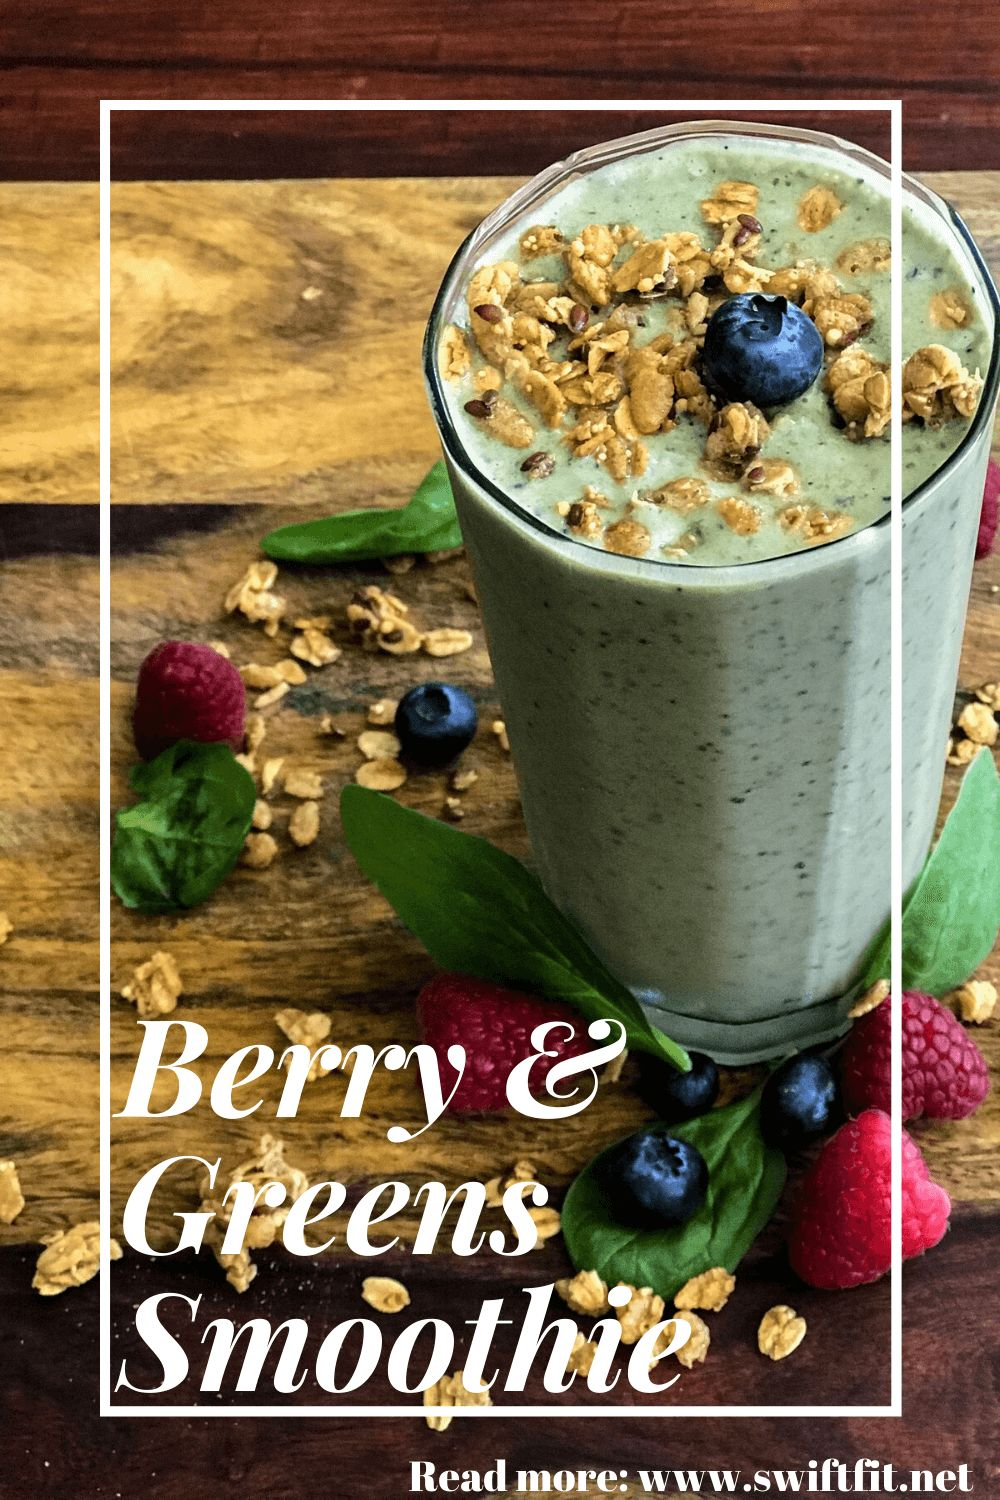 Swift | Berry & Greens Smoothie